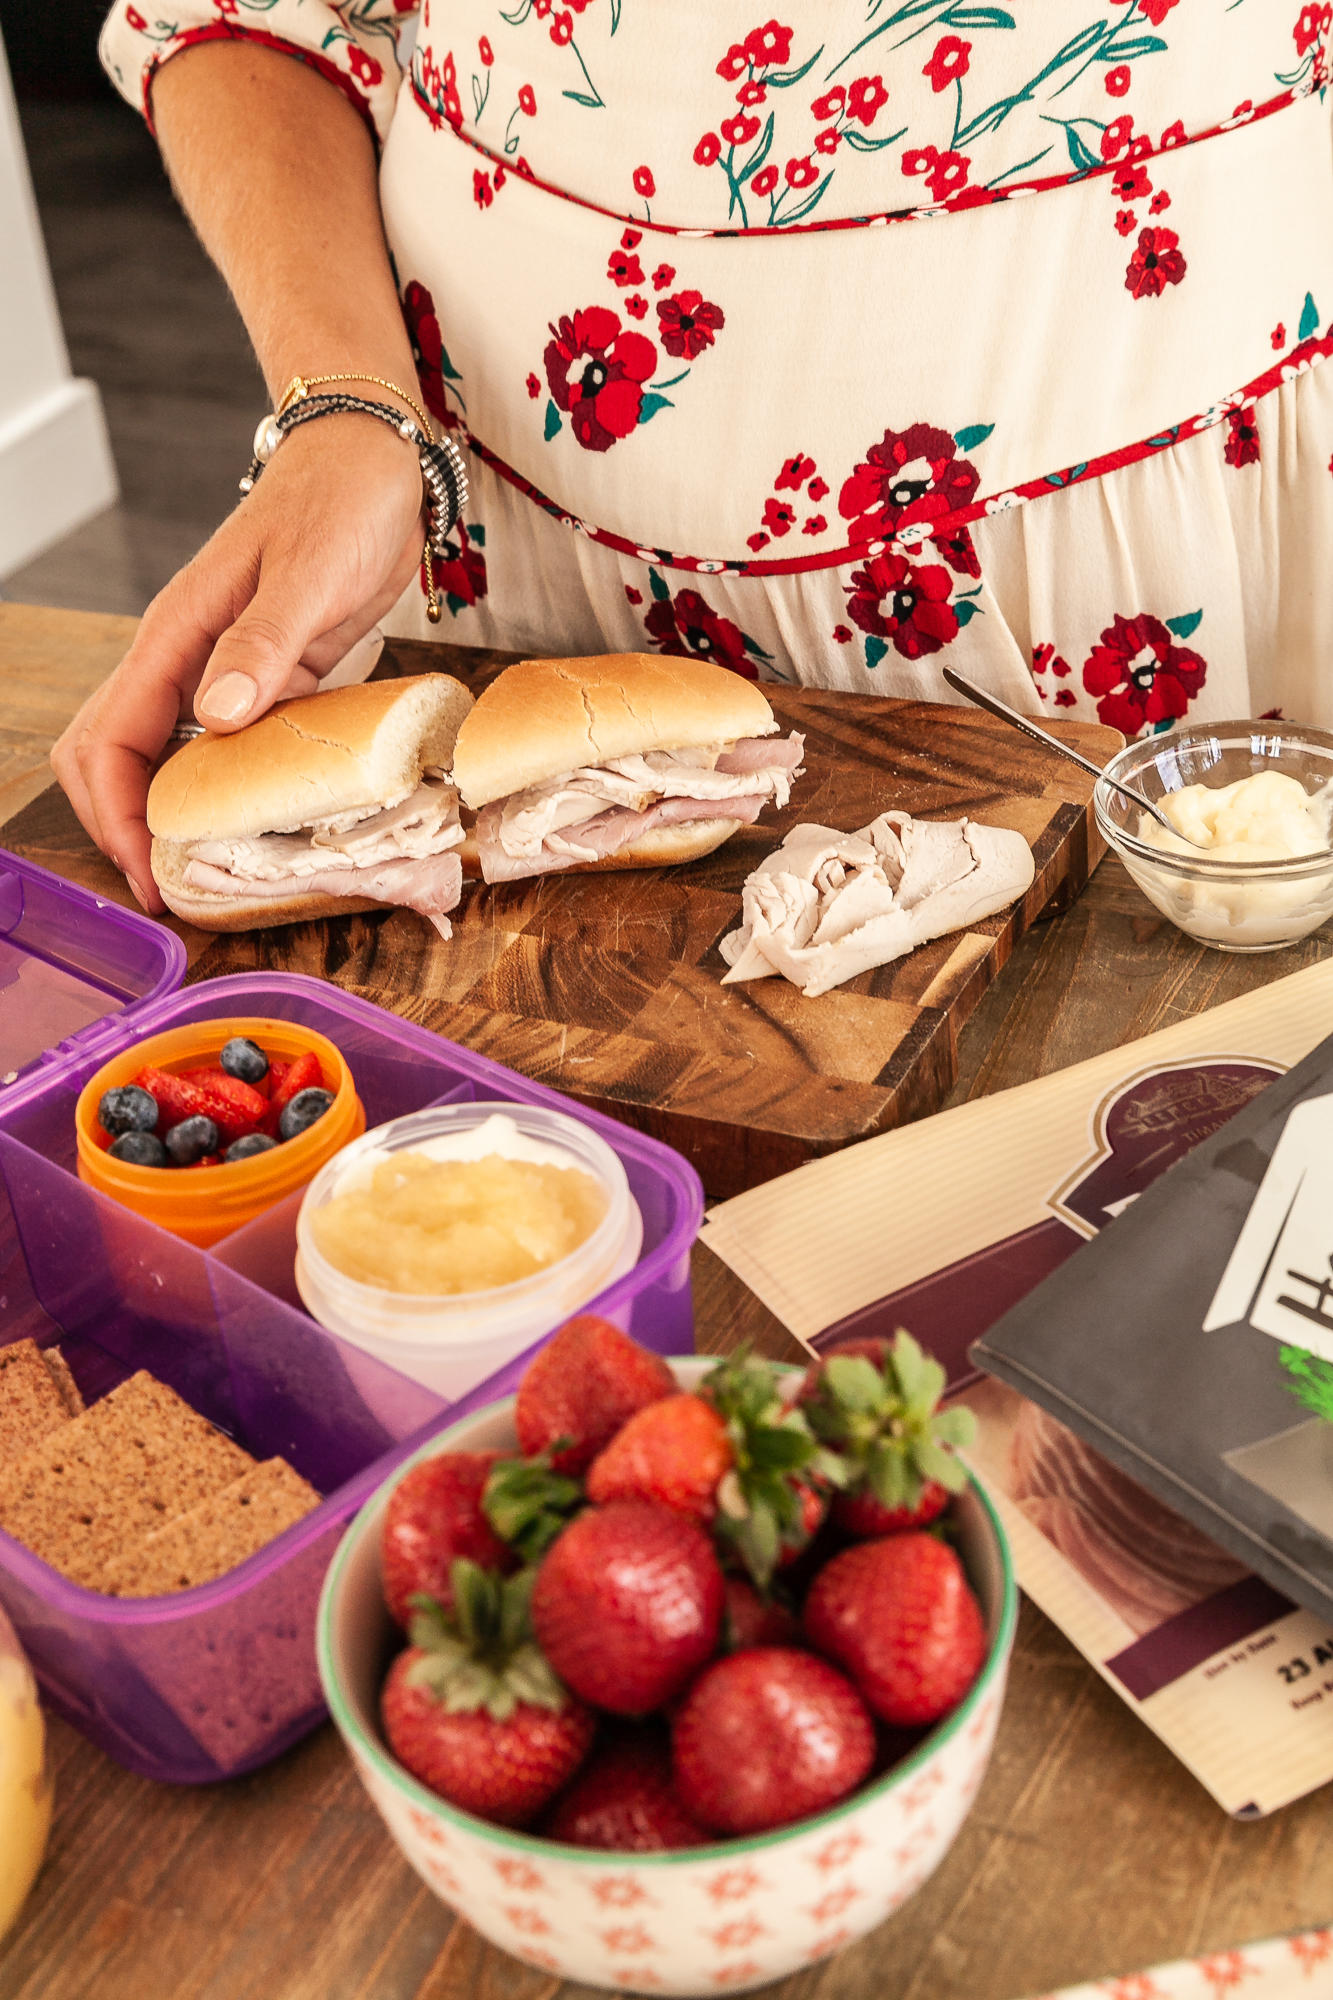 leanmeanmomma Brady ham Homebird lunch box